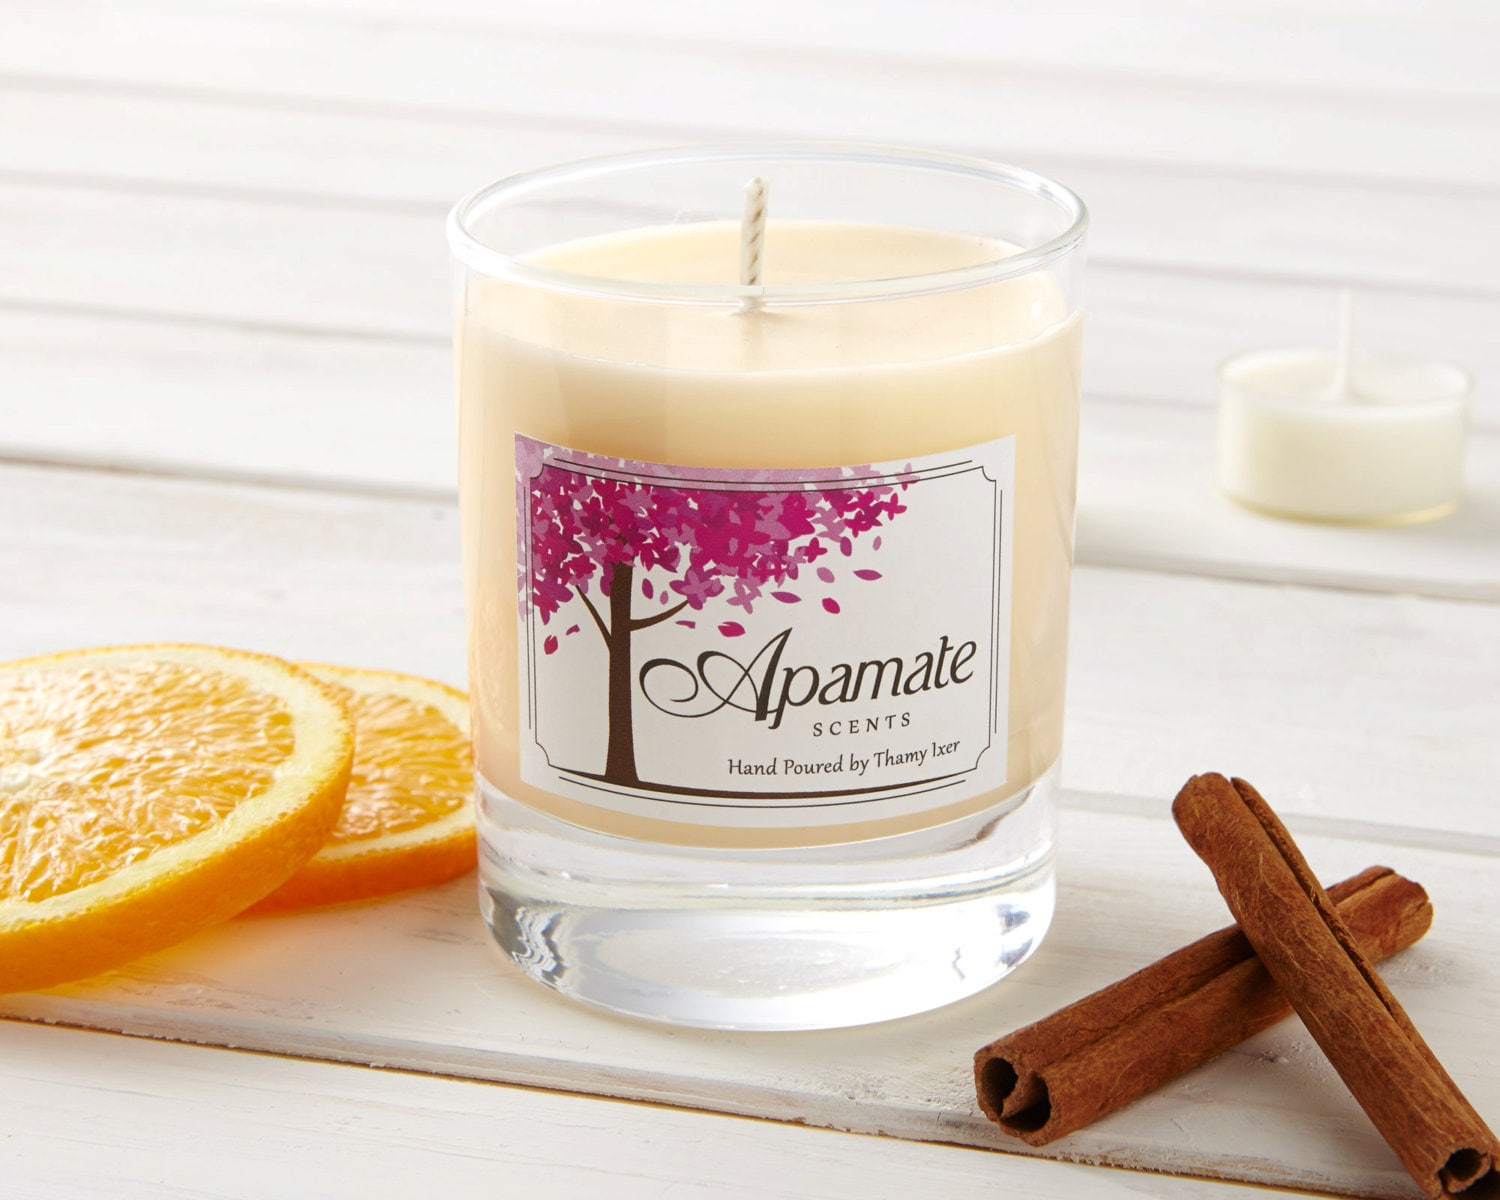 Vegan Candle With Sweet Orange Cinnamon Clove Aromatherapy Natural Soy Wax Scented Candles Vanilla Zoom